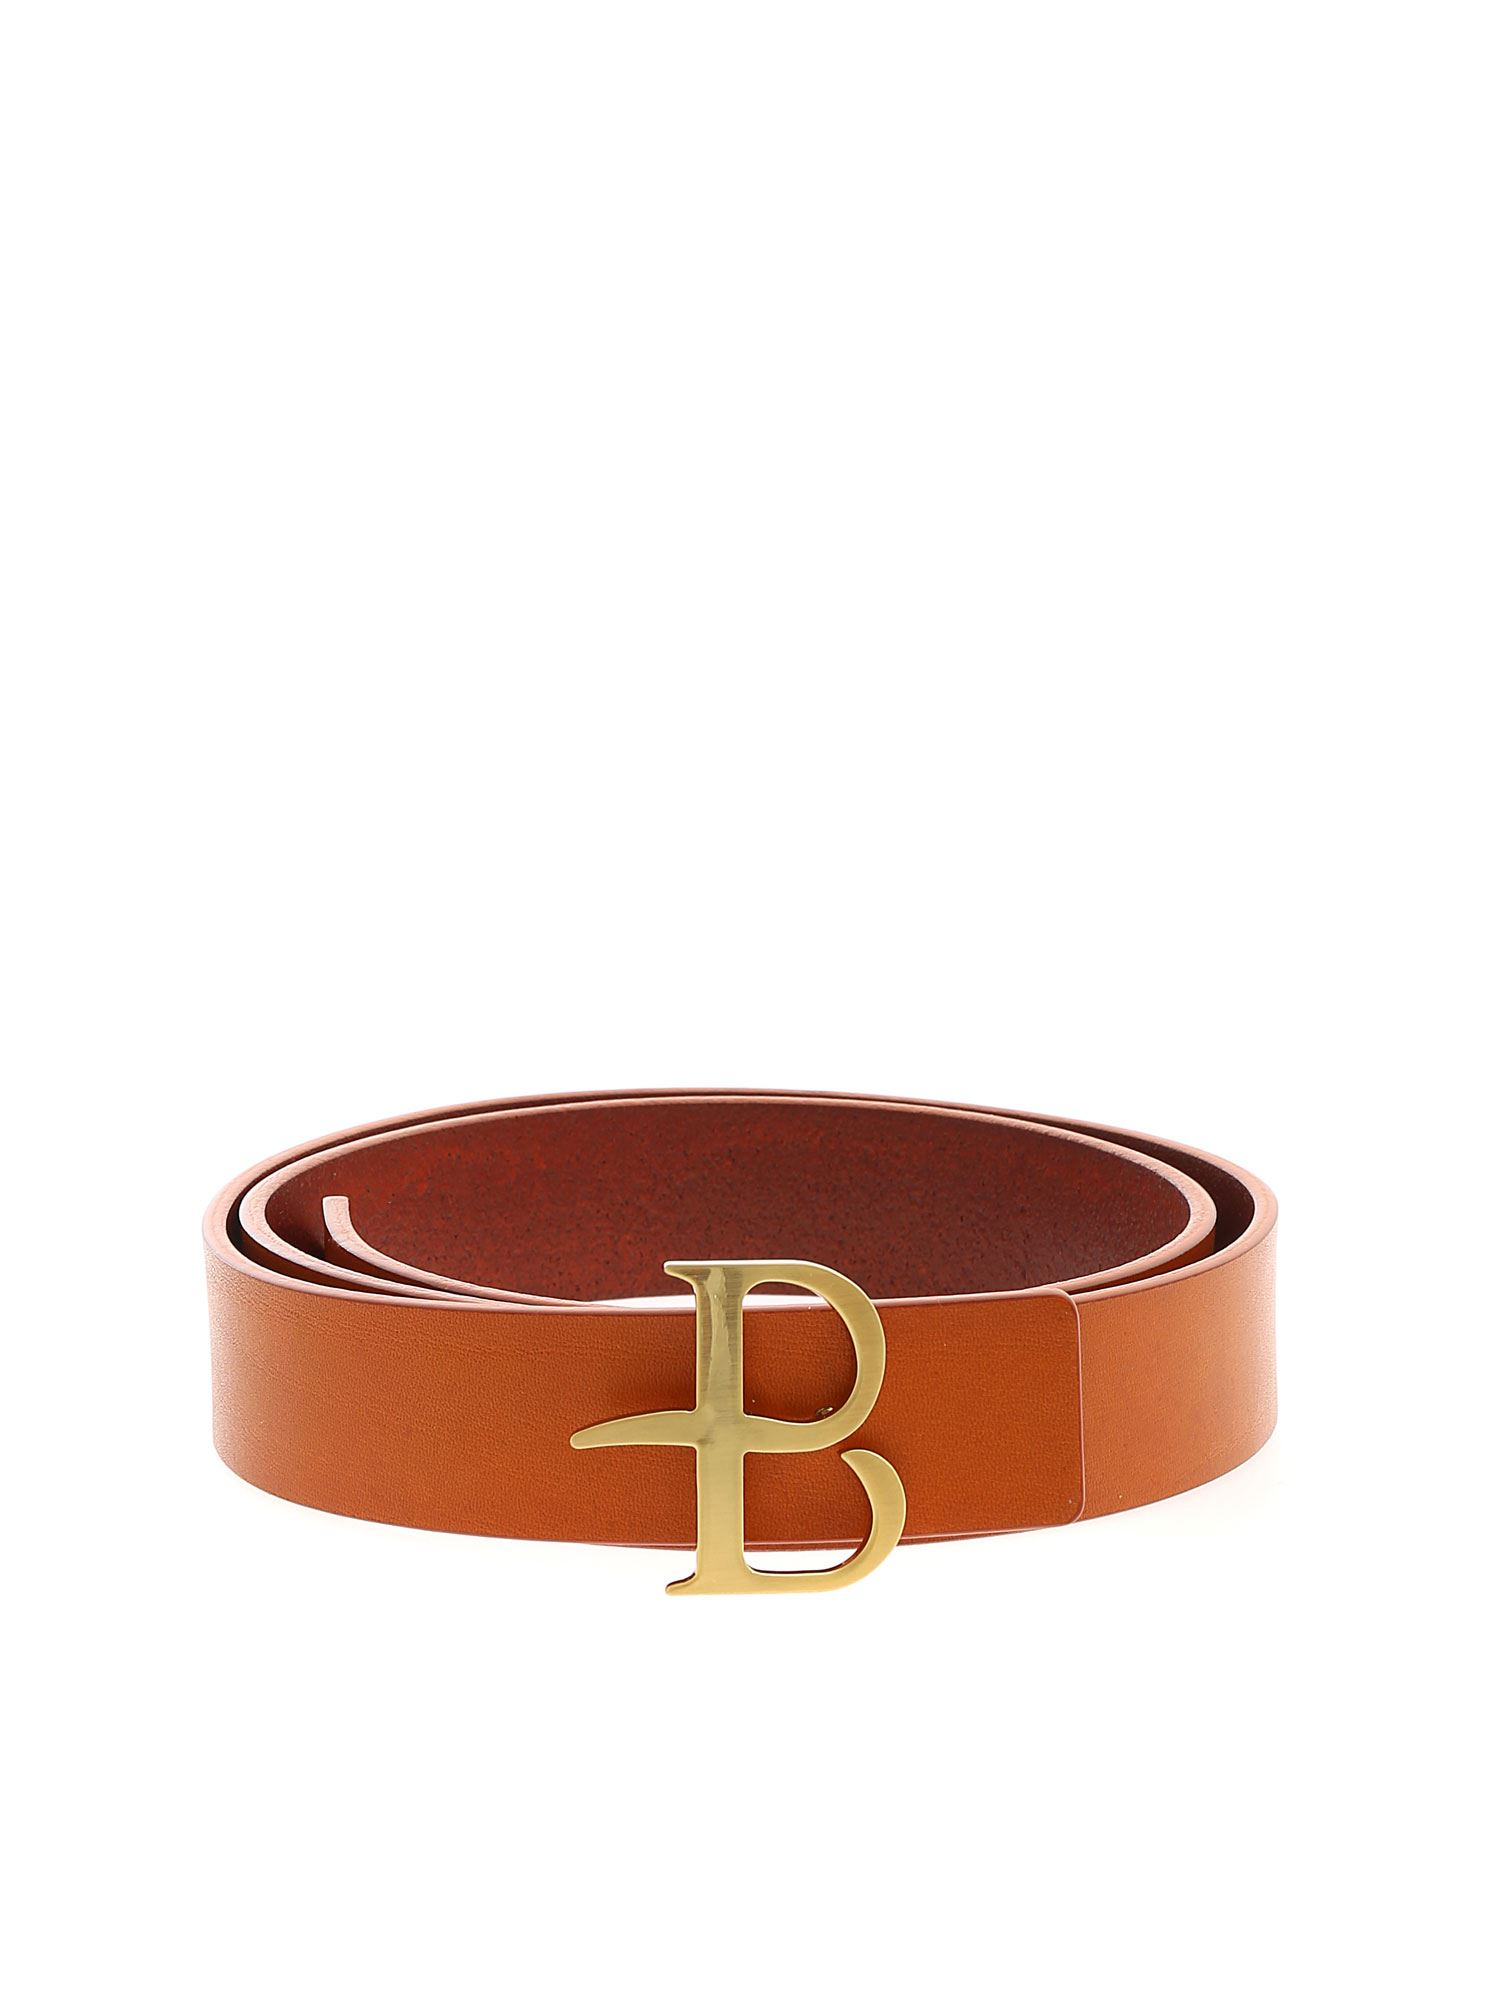 Ballantyne BELT IN ORANGE WITH GOLDEN LOGO BUCKLE